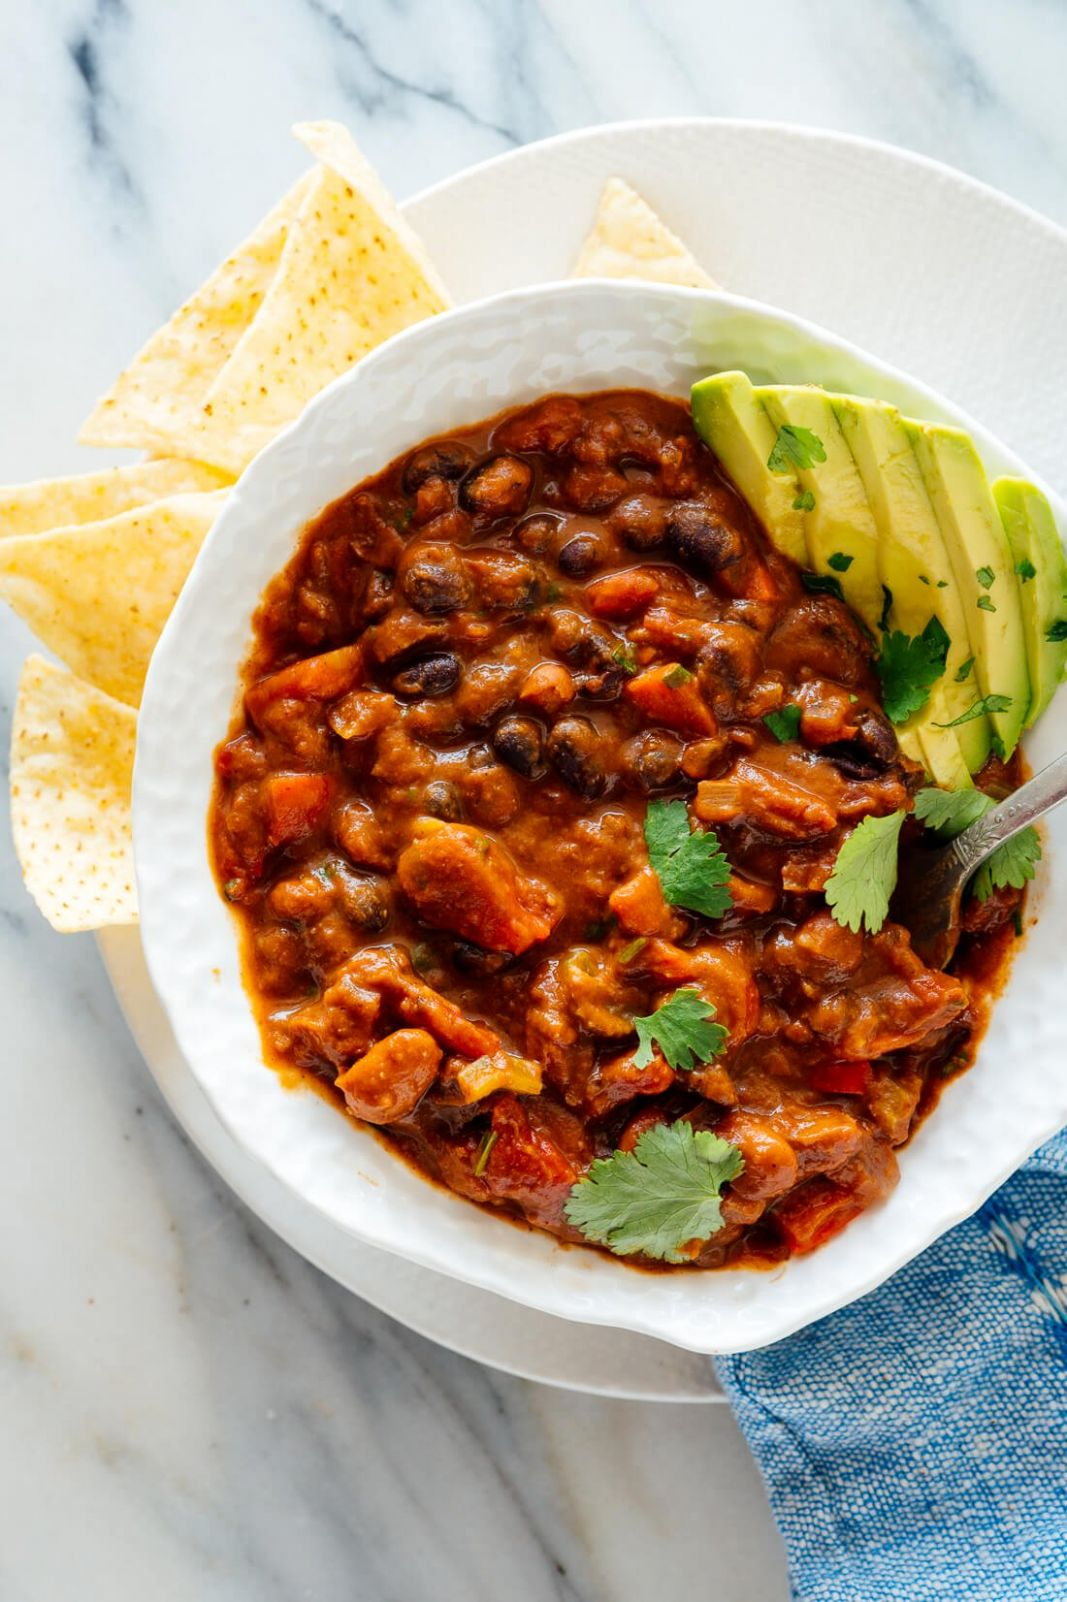 Homemade Vegetarian Chili - Recipes Vegetable Chili